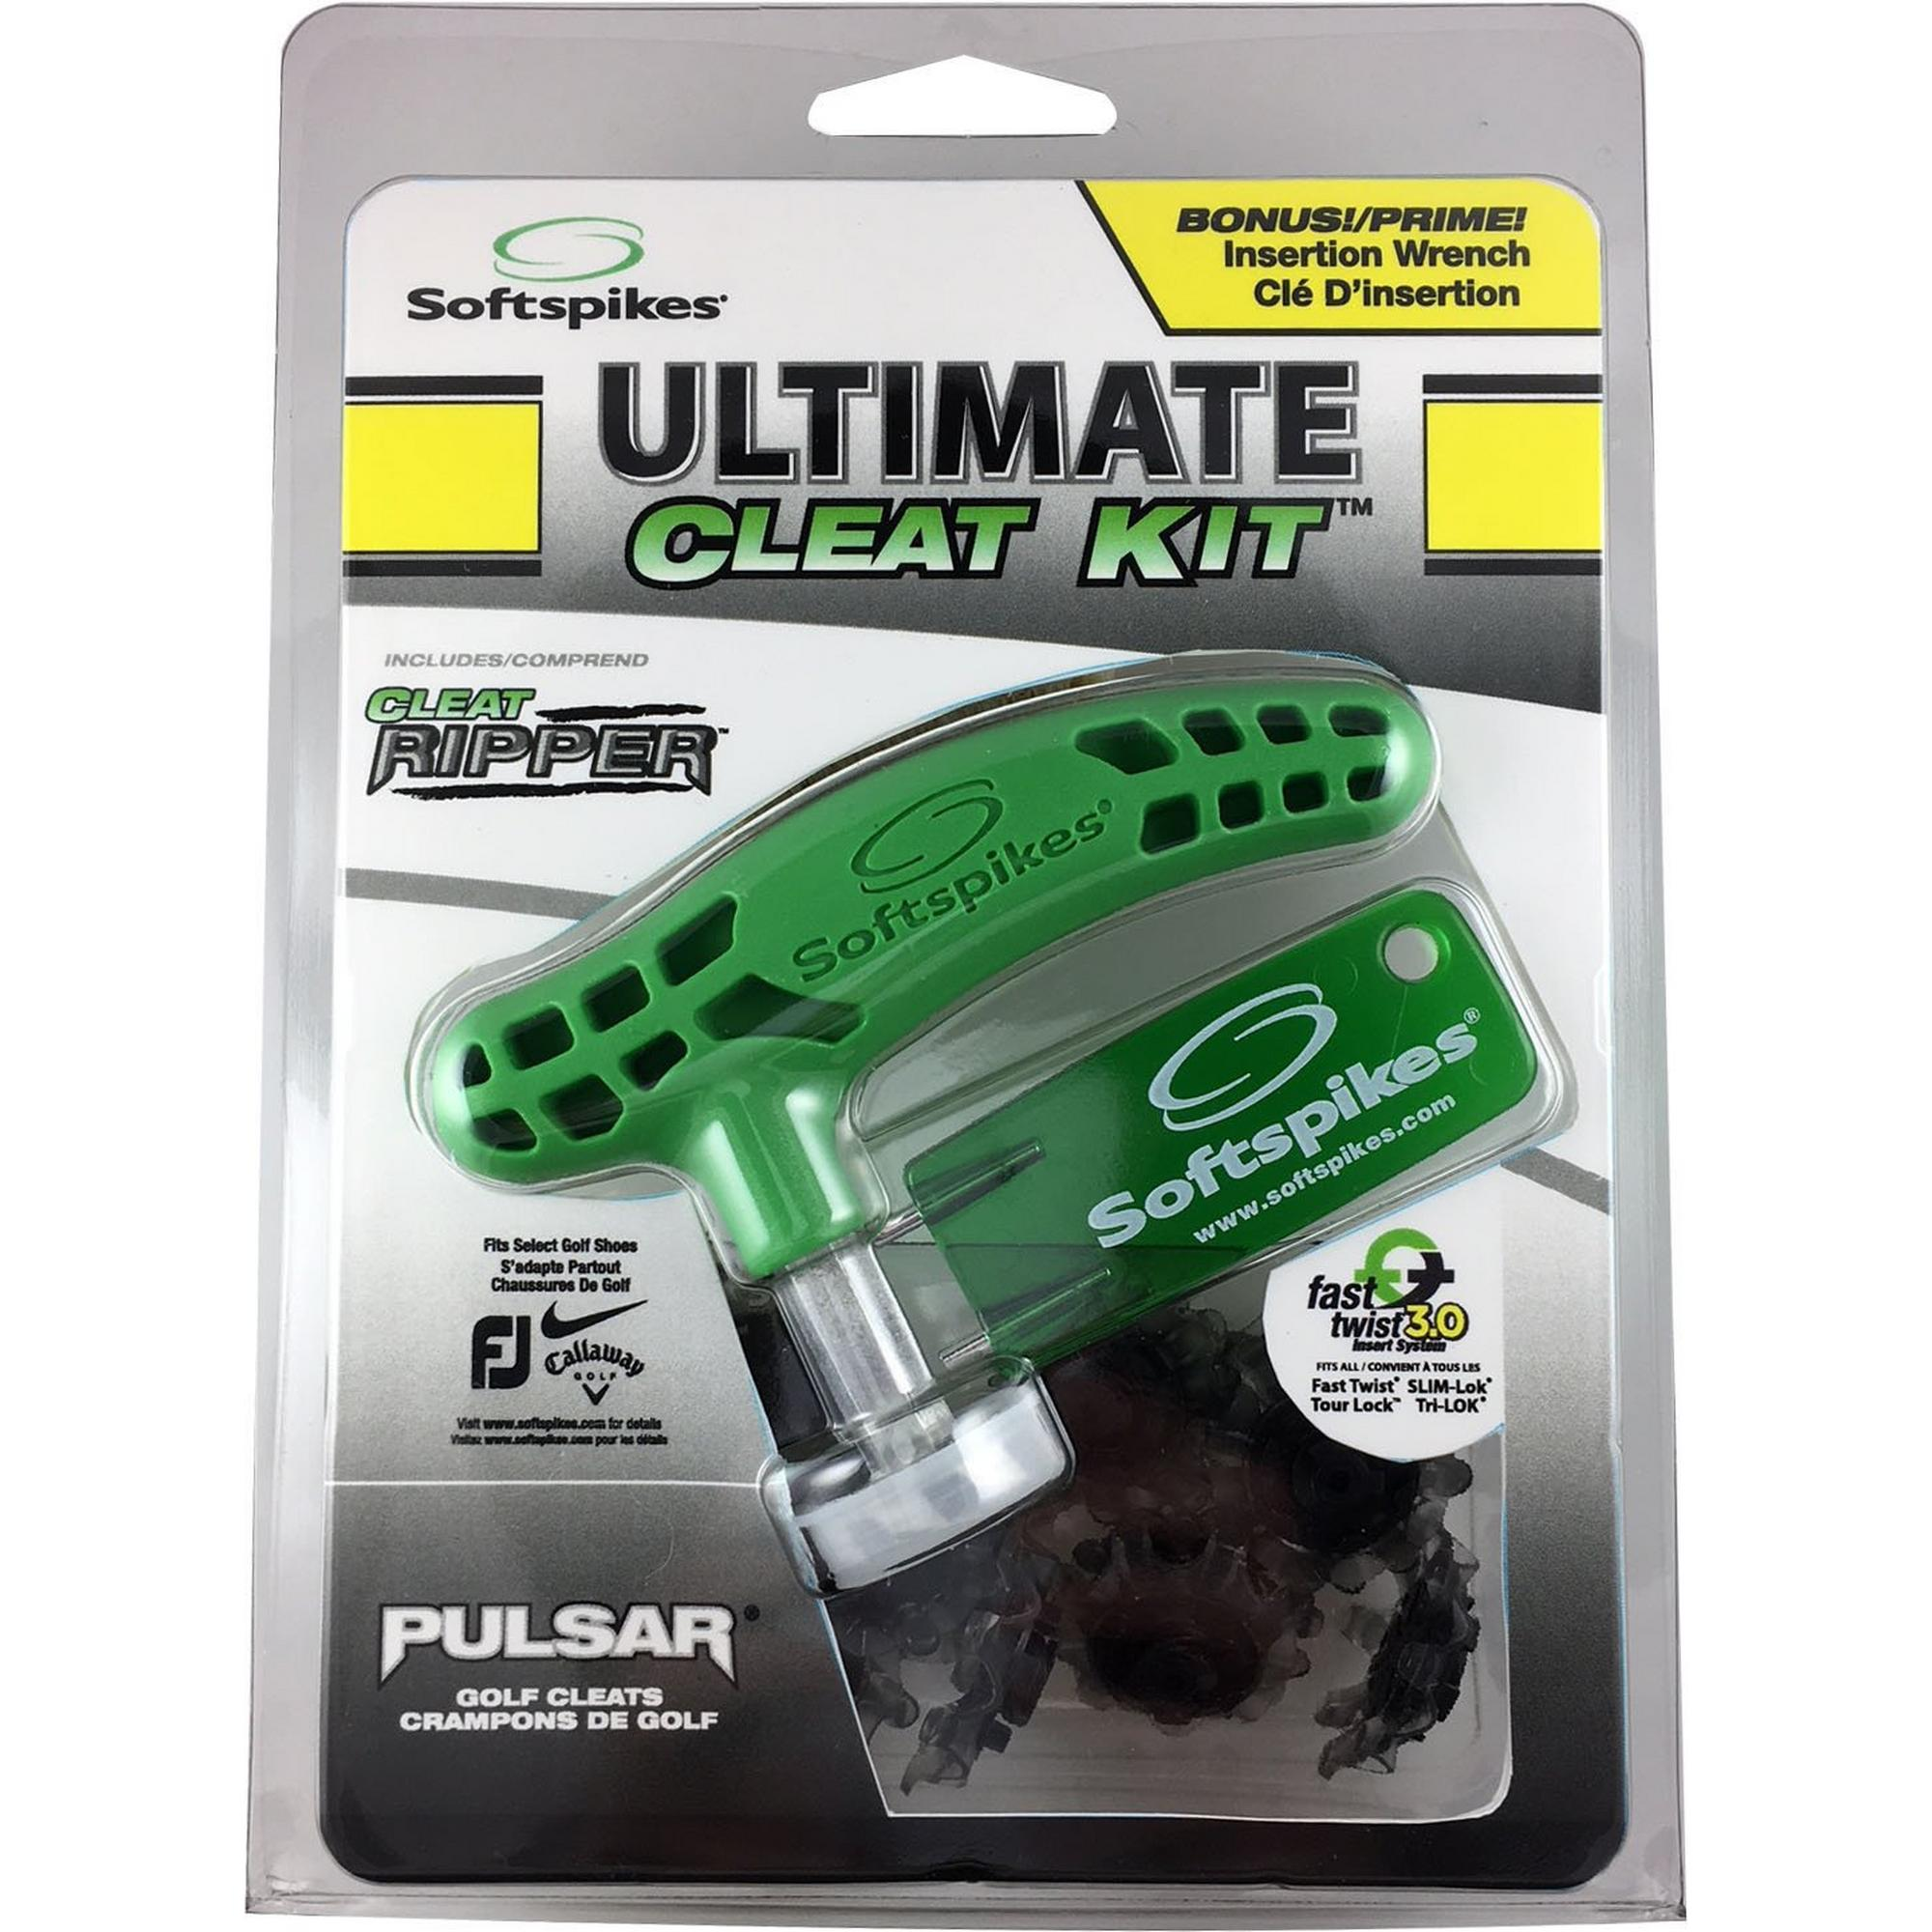 Pulsar Ultimate Cleat Kit Fast Twist 3.0